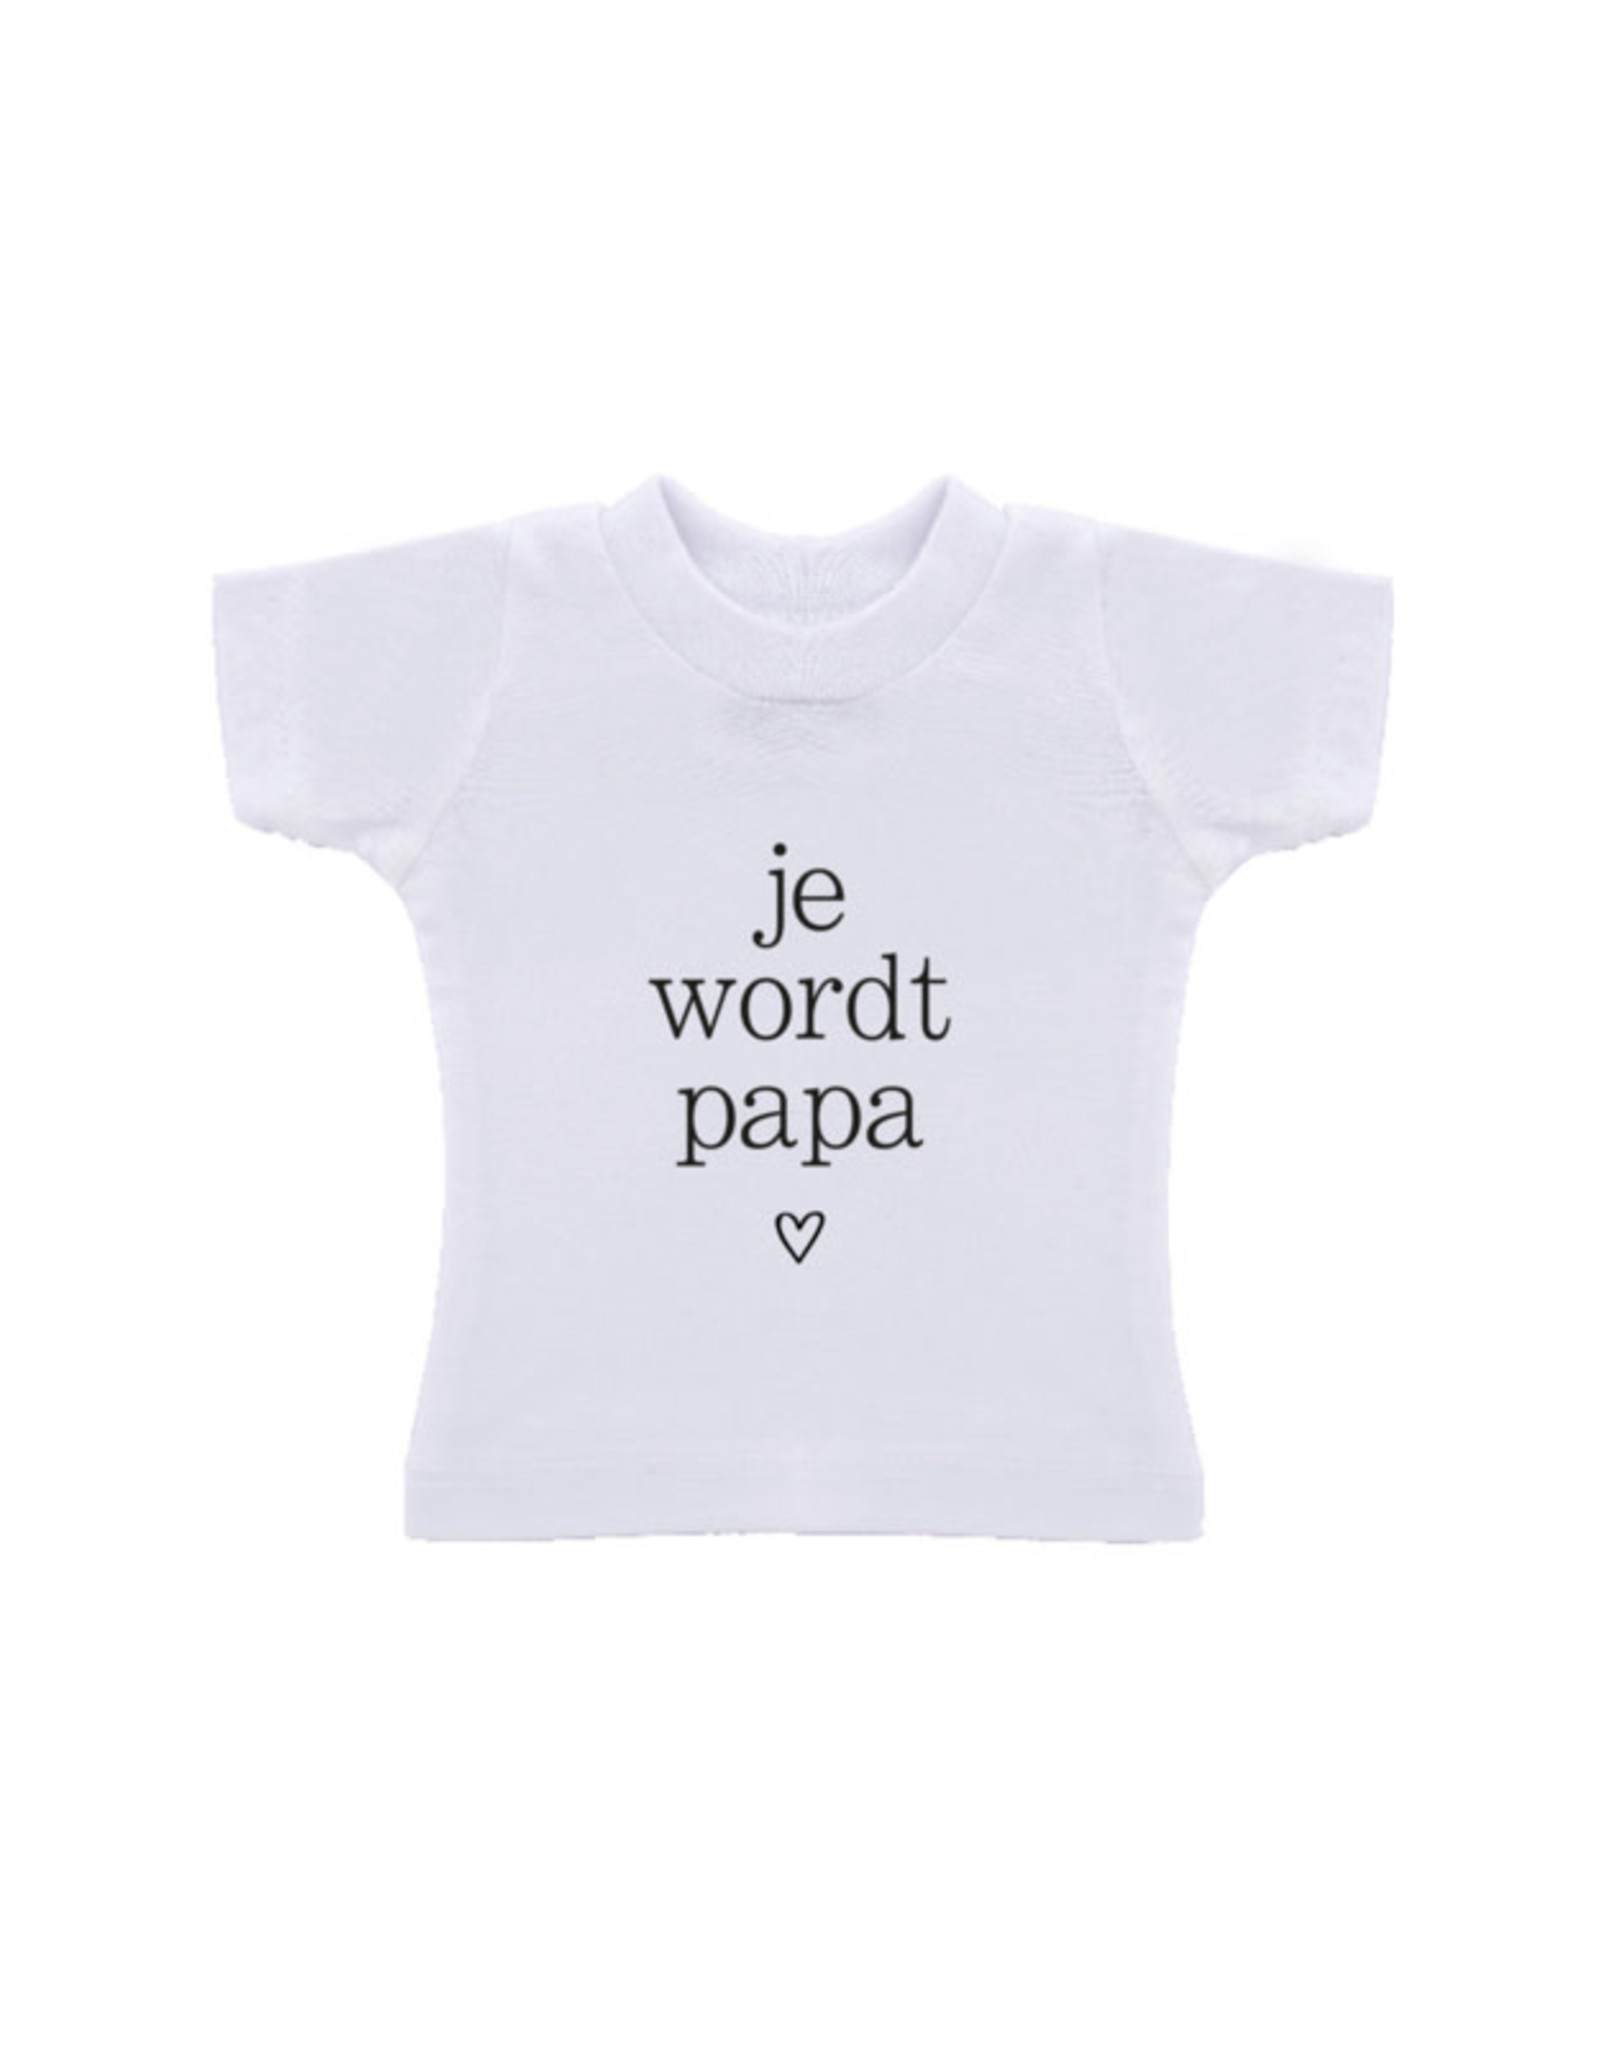 By romi by romi t-shirt in een zak: je wordt papa